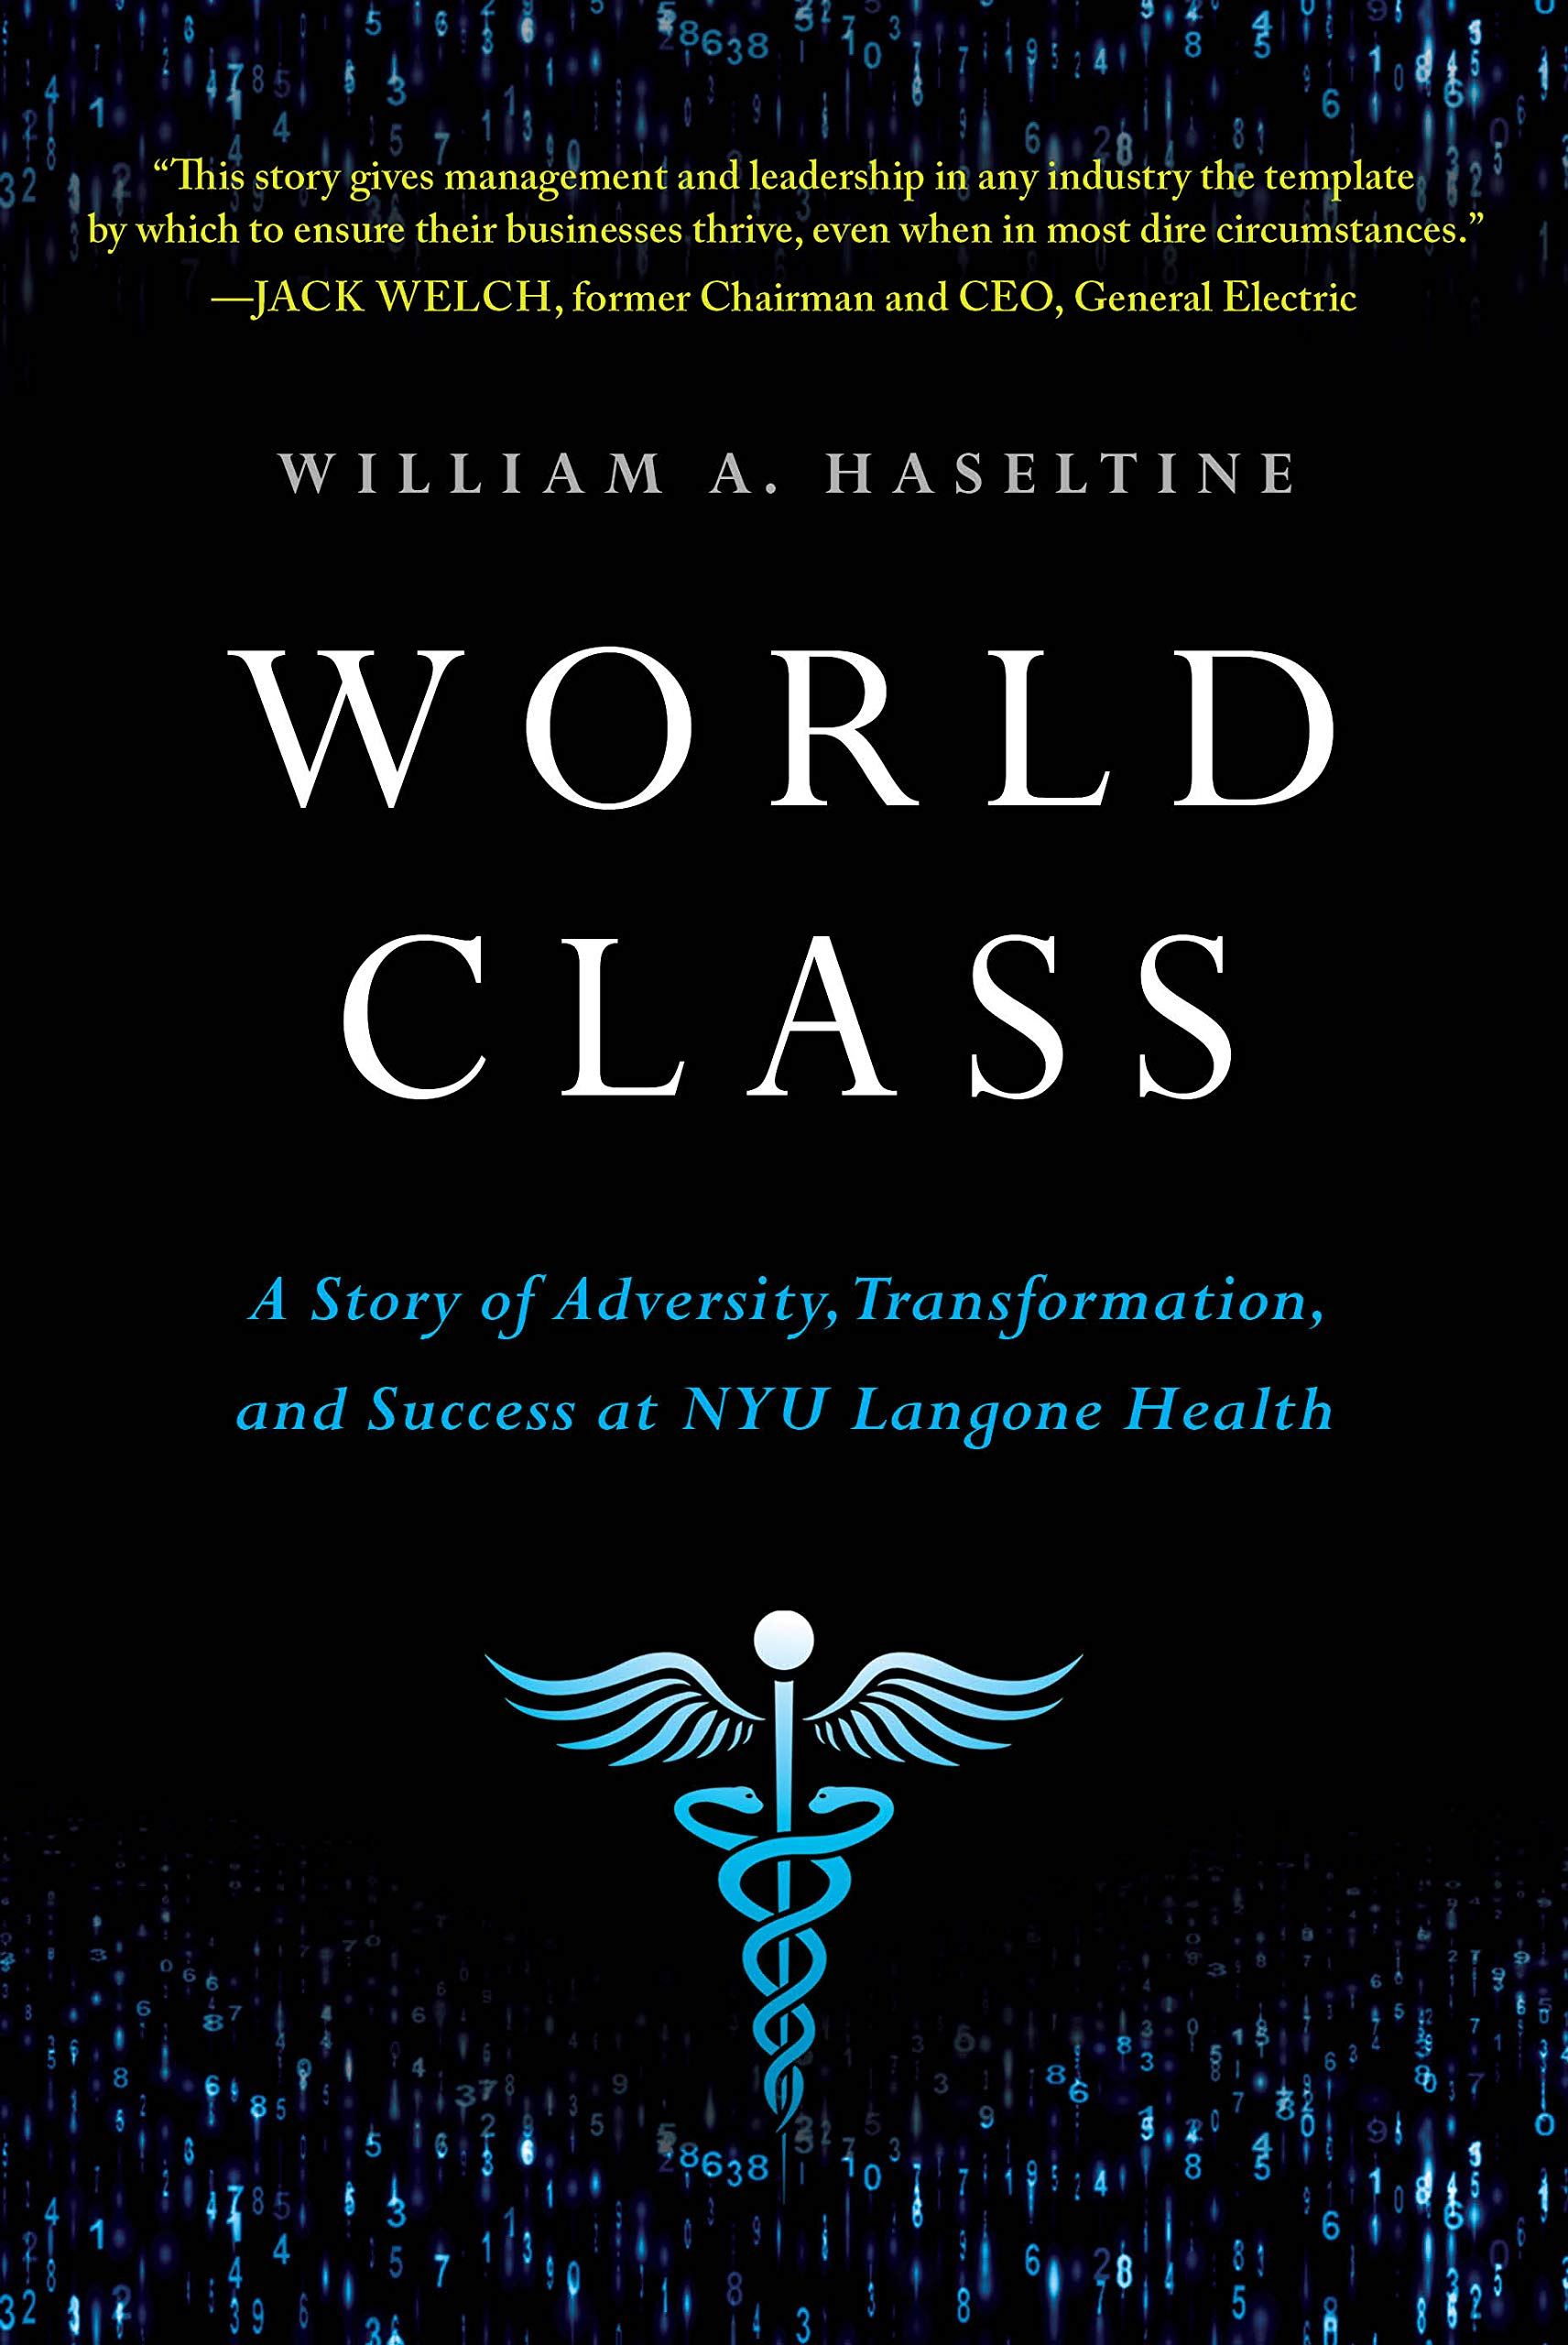 World Class: A Story of Adversity, Transformation, and